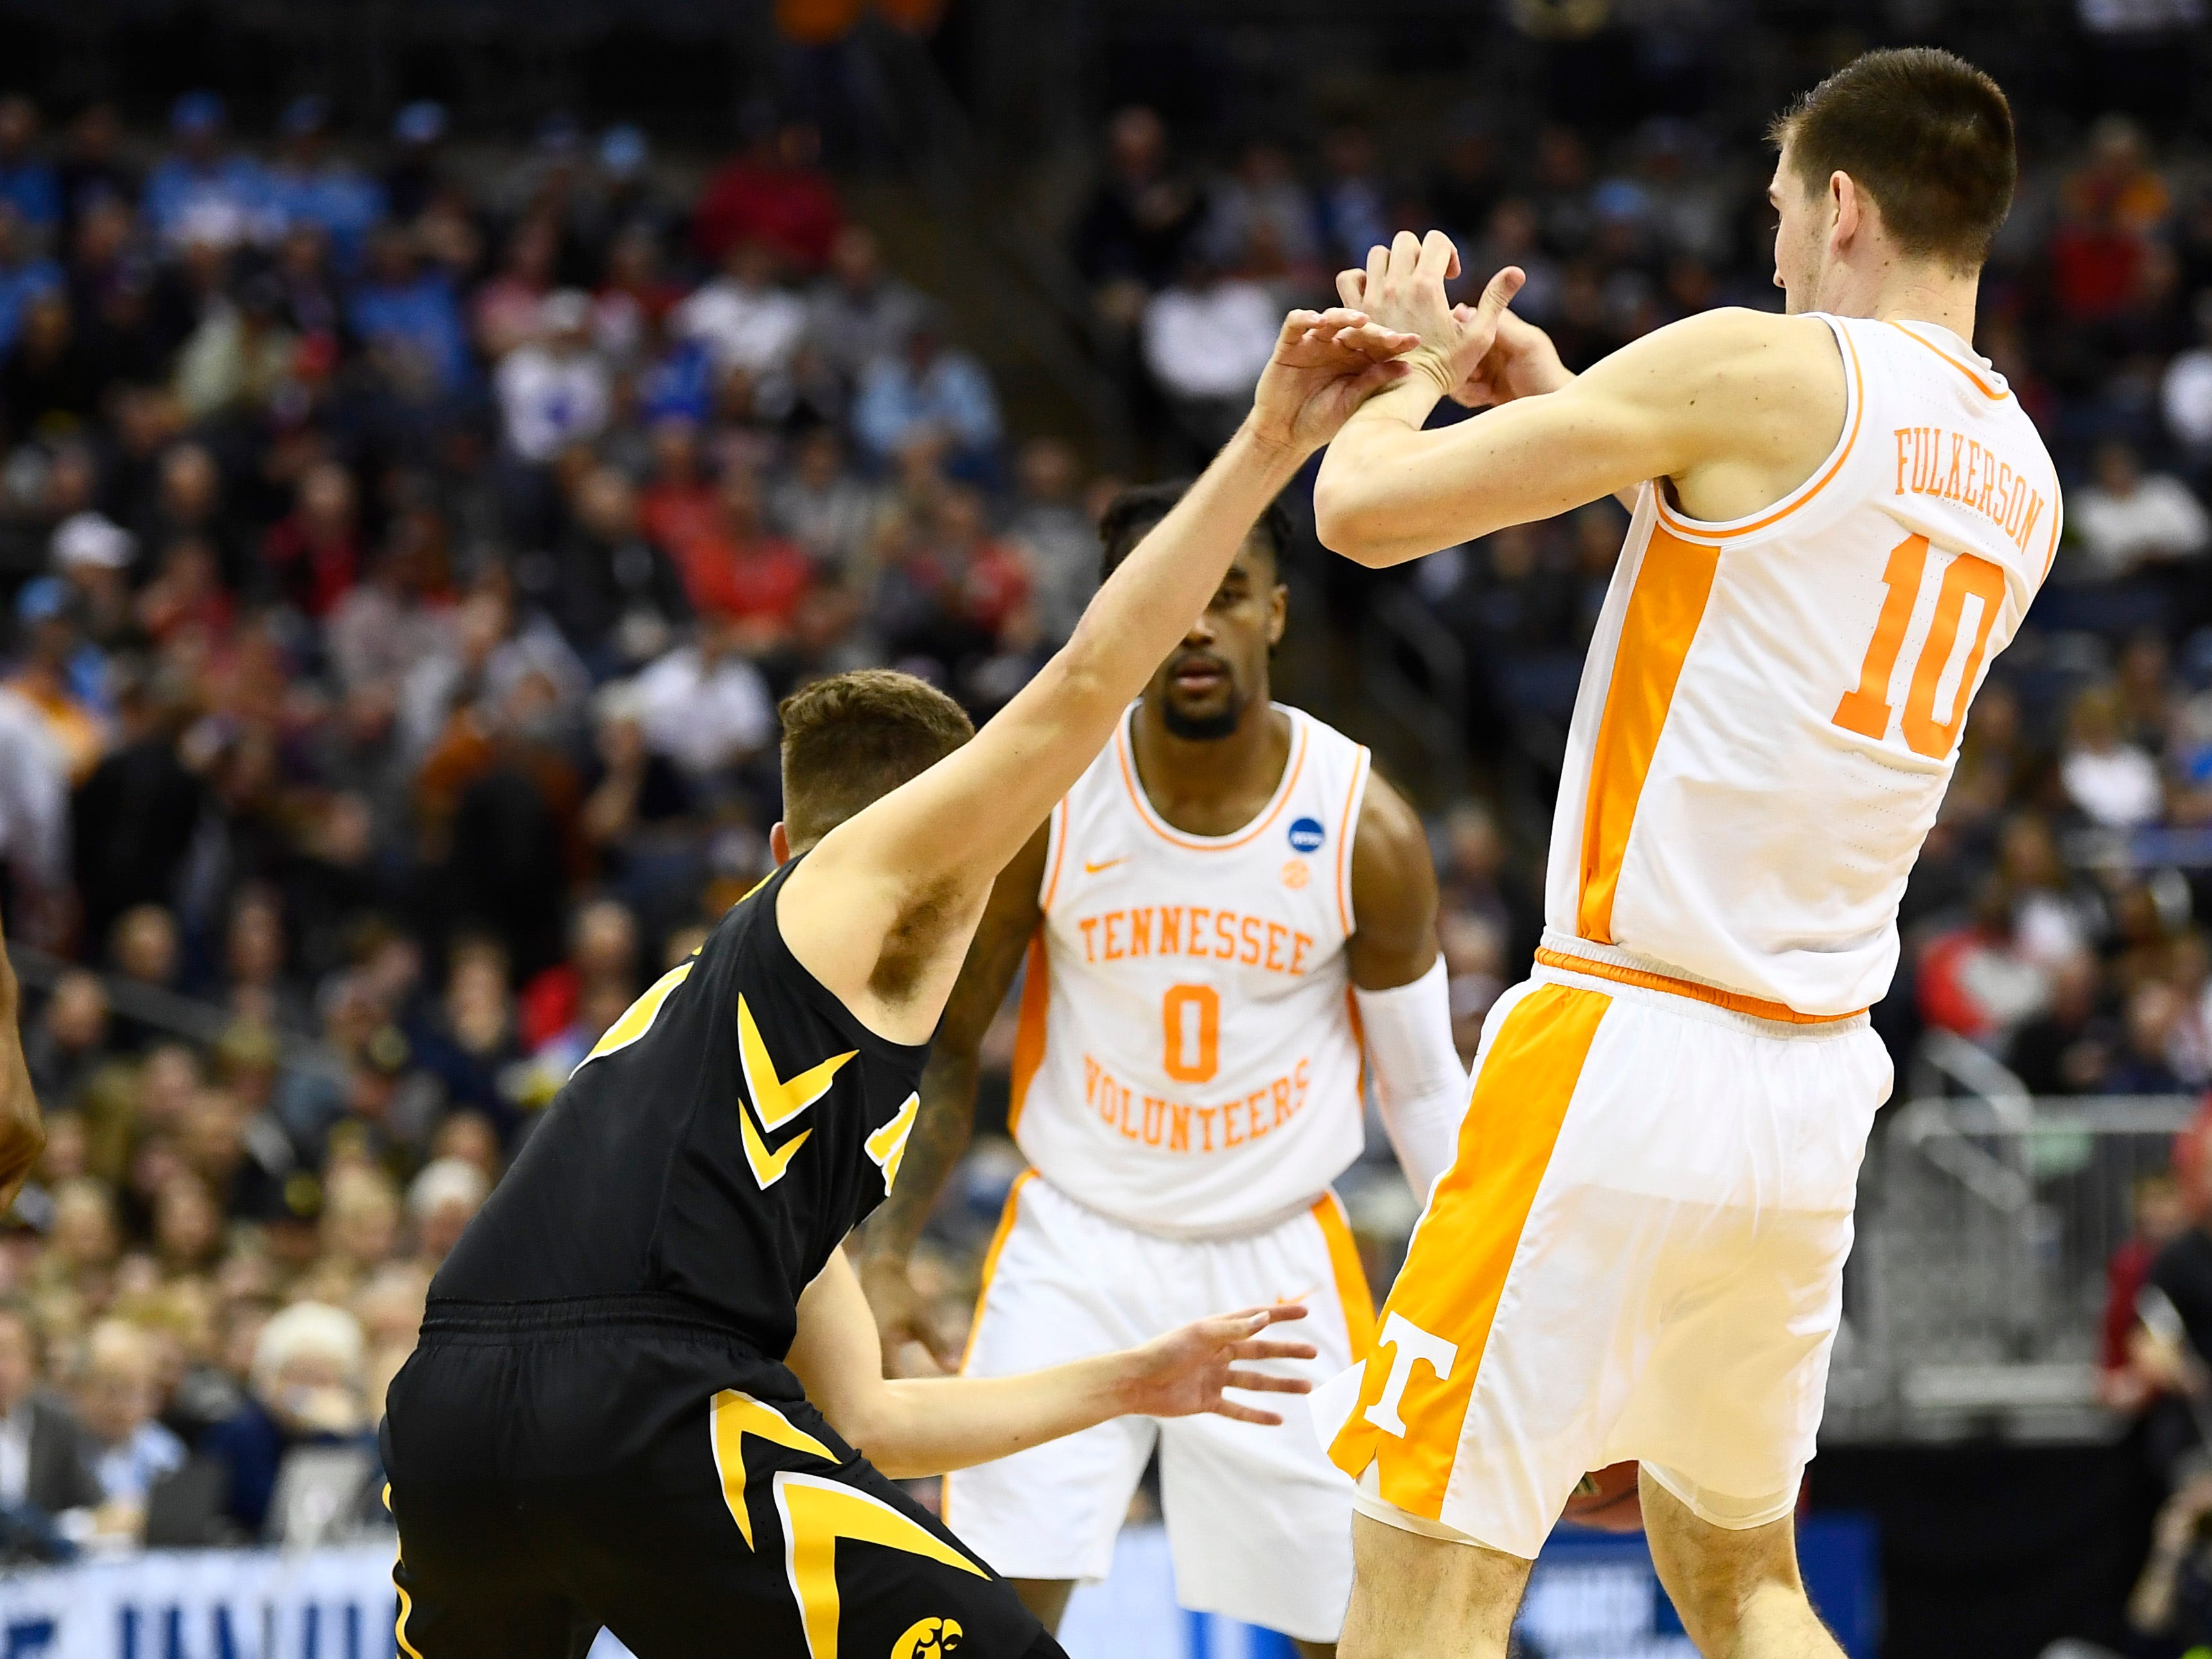 Iowa guard Jordan Bohannon (3) pushes off Tennessee forward John Fulkerson (10) during the second half of the second-round game in the NCAA Tournament at Nationwide Arena in Columbus, Ohio, Sunday, March 24, 2019.